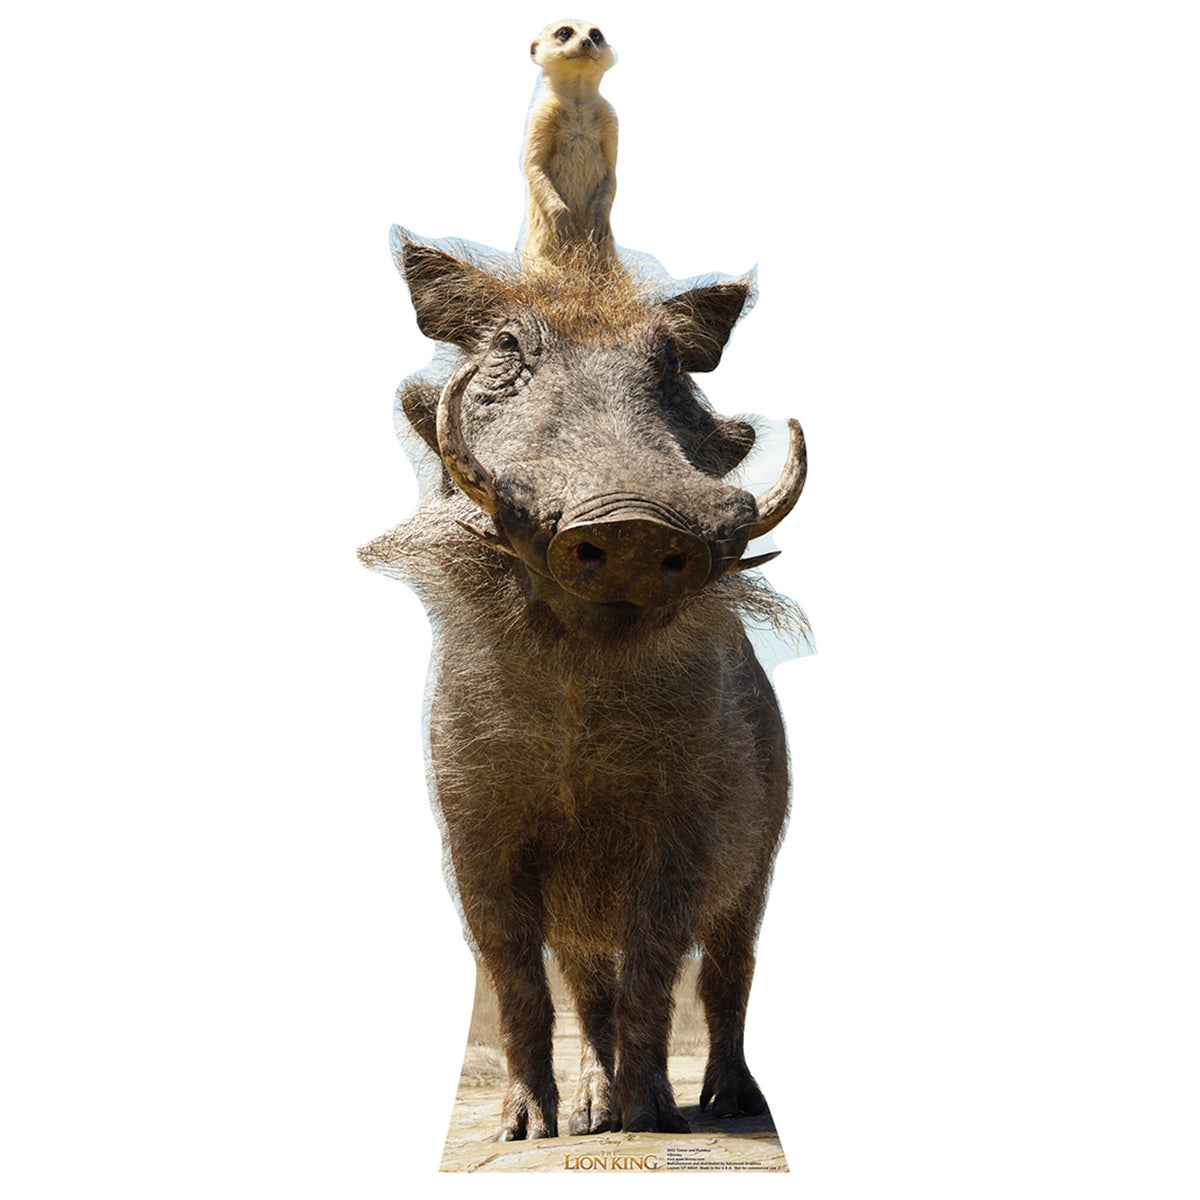 The Lion King Timon and Pumbaa Standee